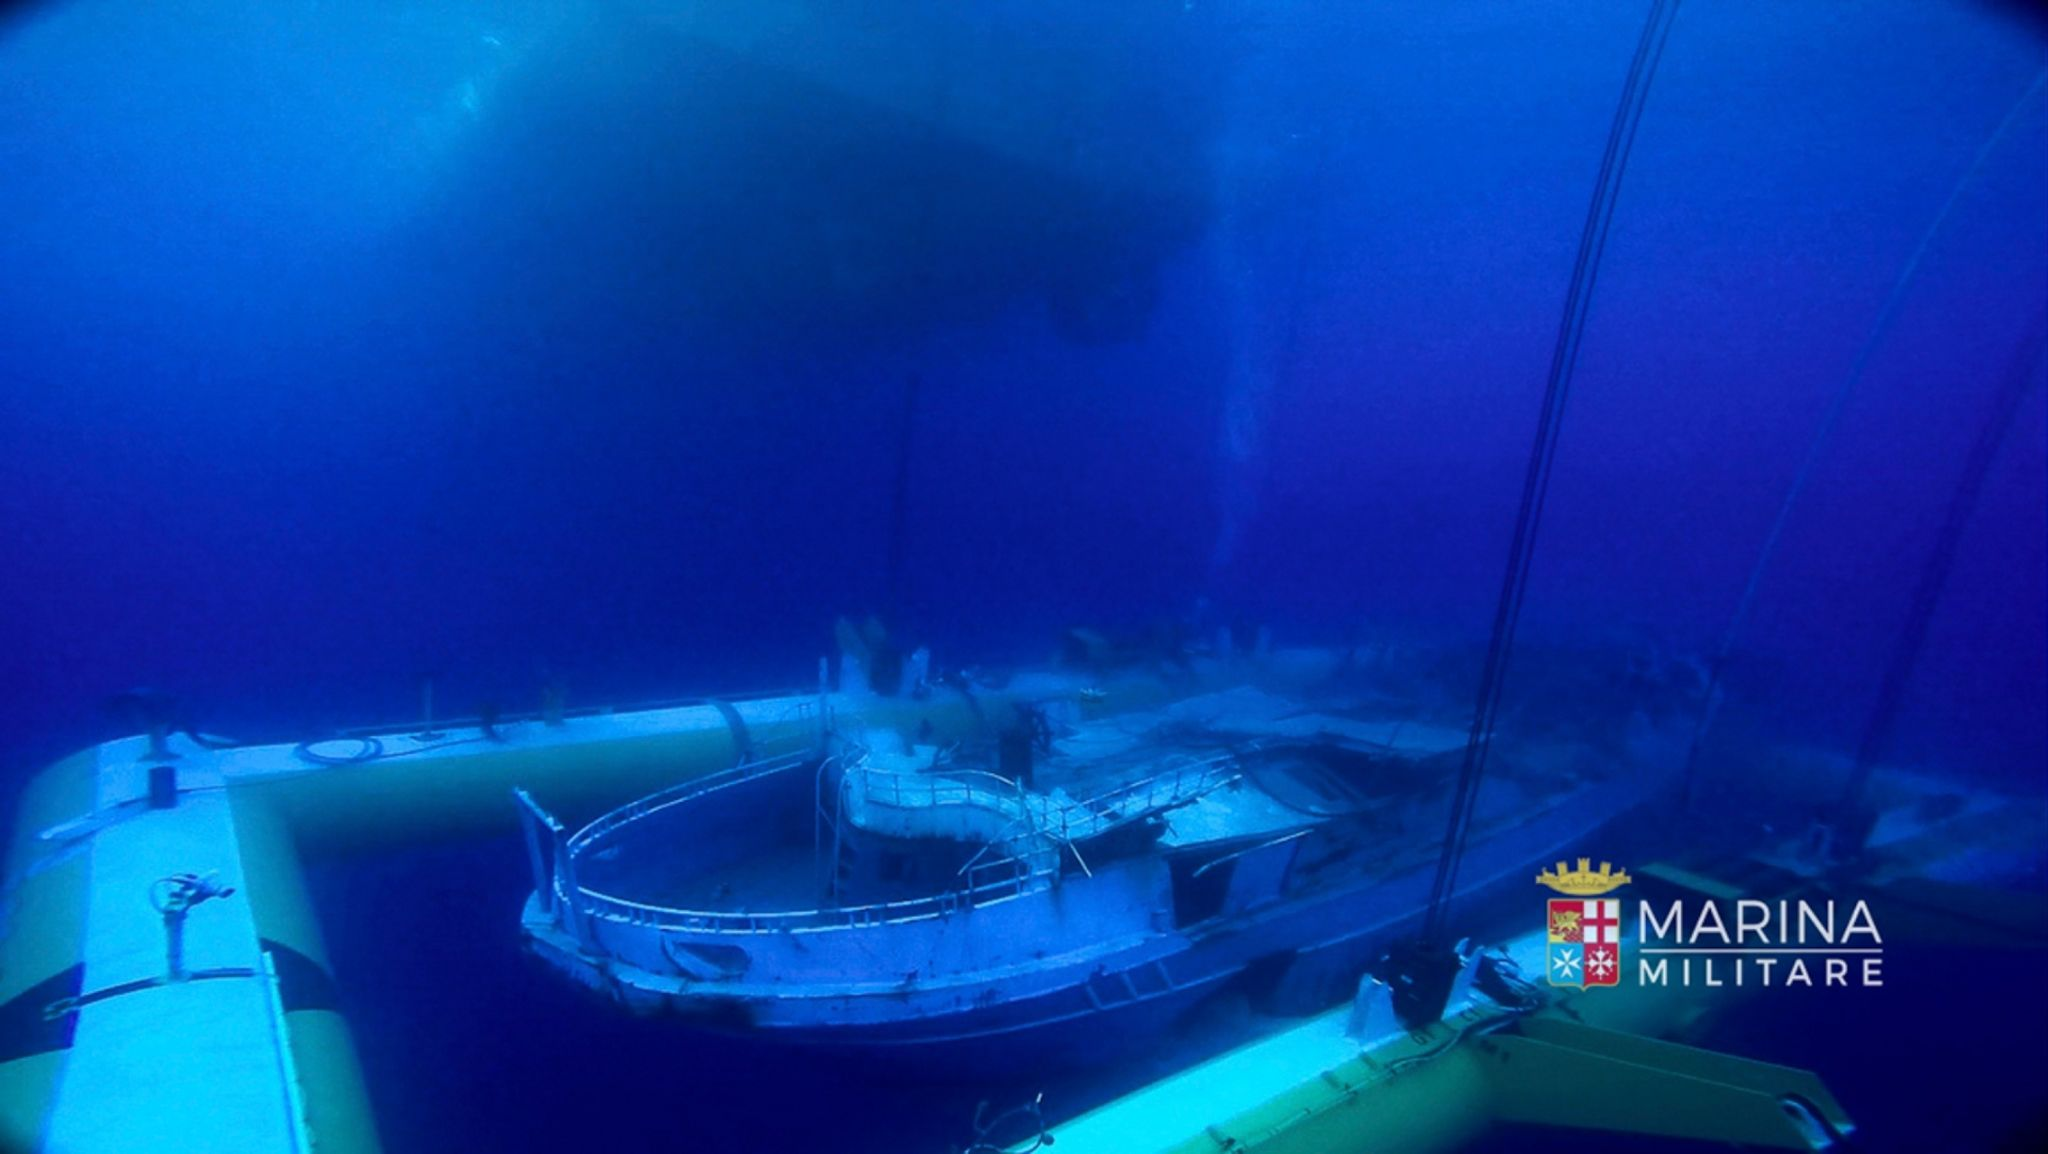 A fishing boat was attached to a cradle in order to lift it from the sea bed